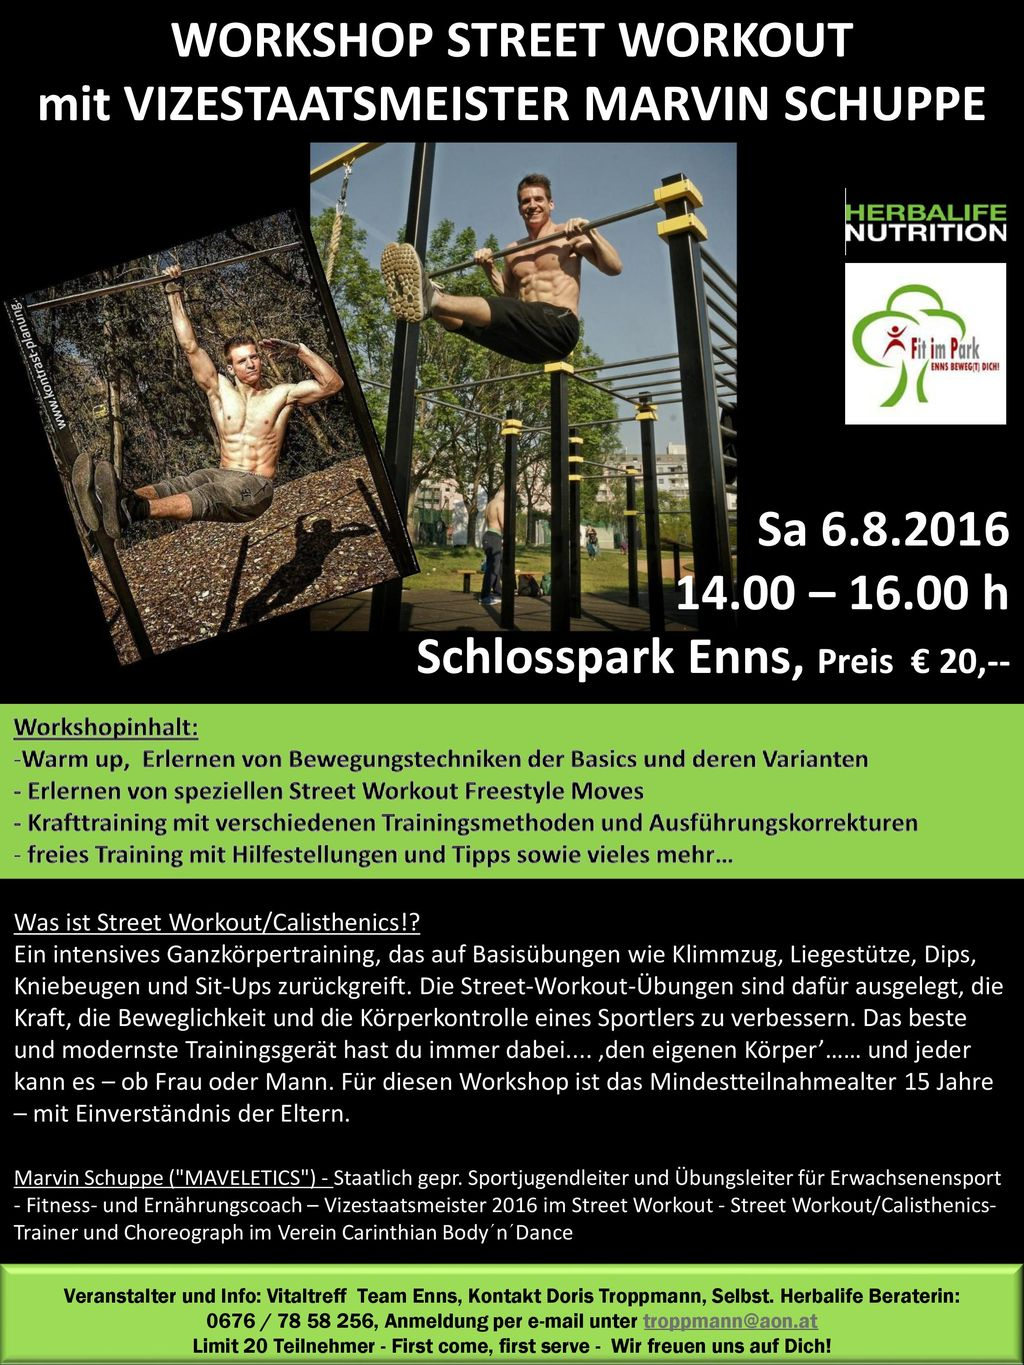 WORKSHOP STREET WORKOUT mit VIZESTAATSMEISTER MARVIN SCHUPPE